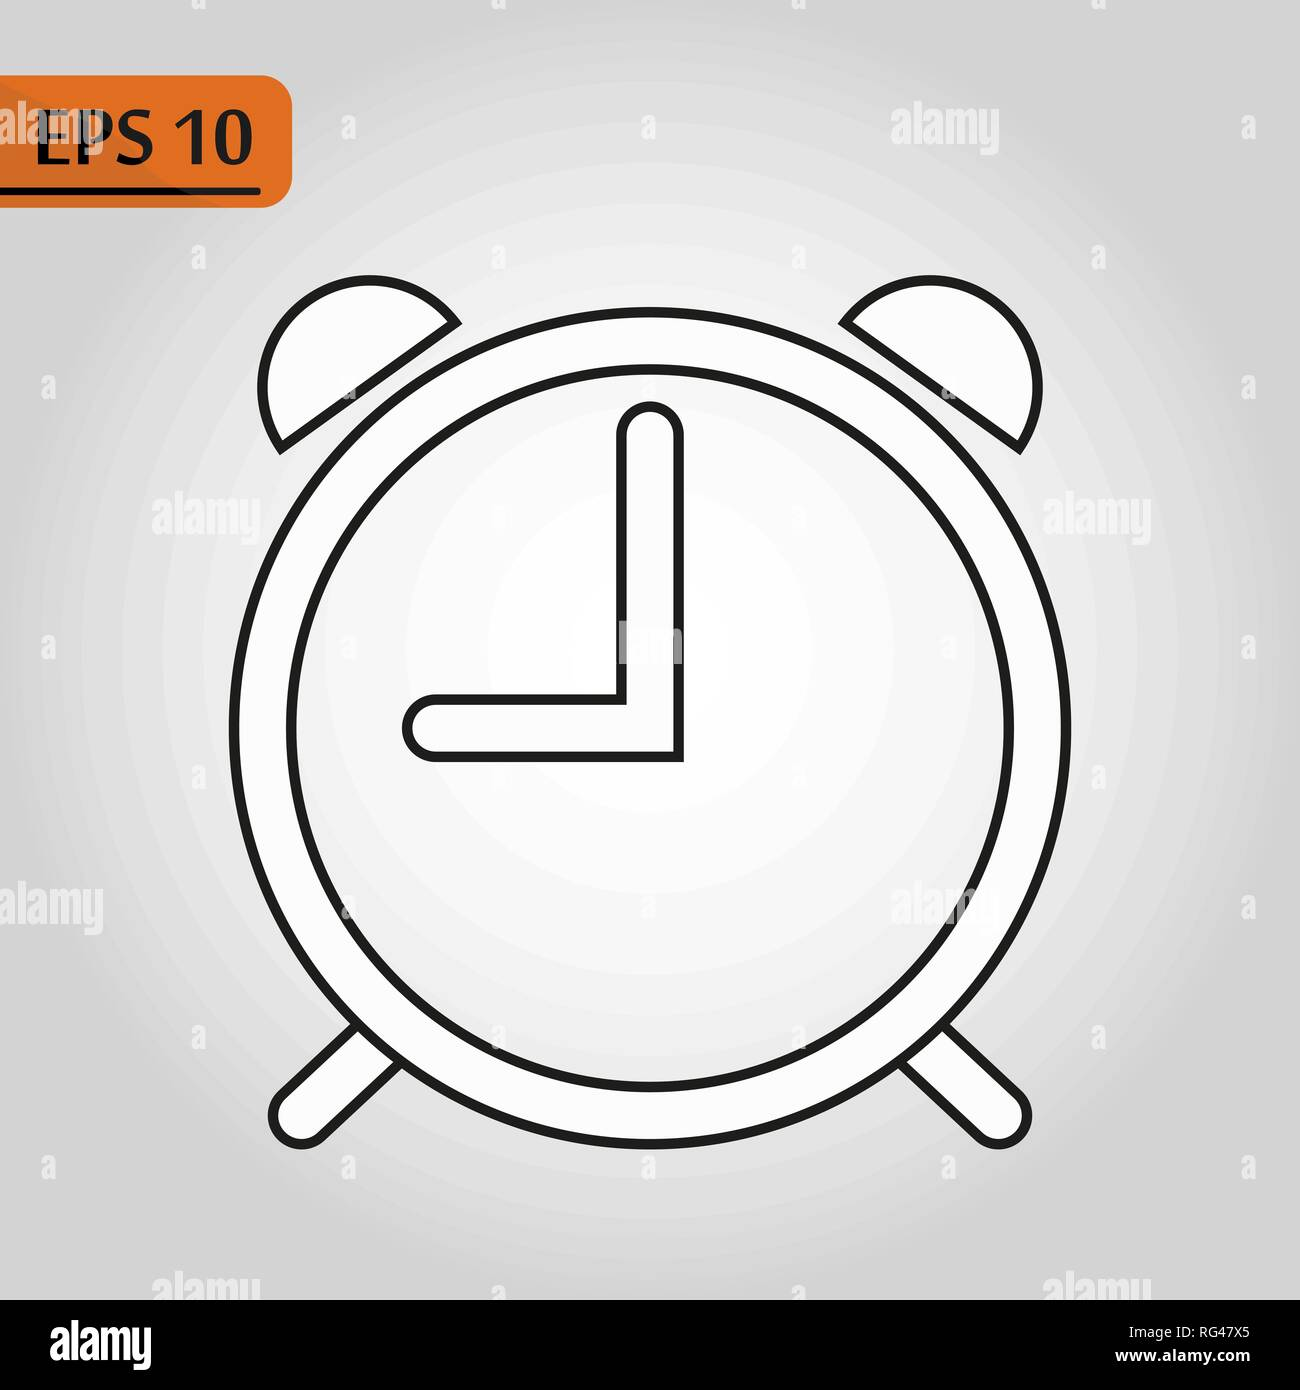 hight resolution of alarm clock icon isolated on white background simple line outline style alarm clock ringing icon modern design ep10